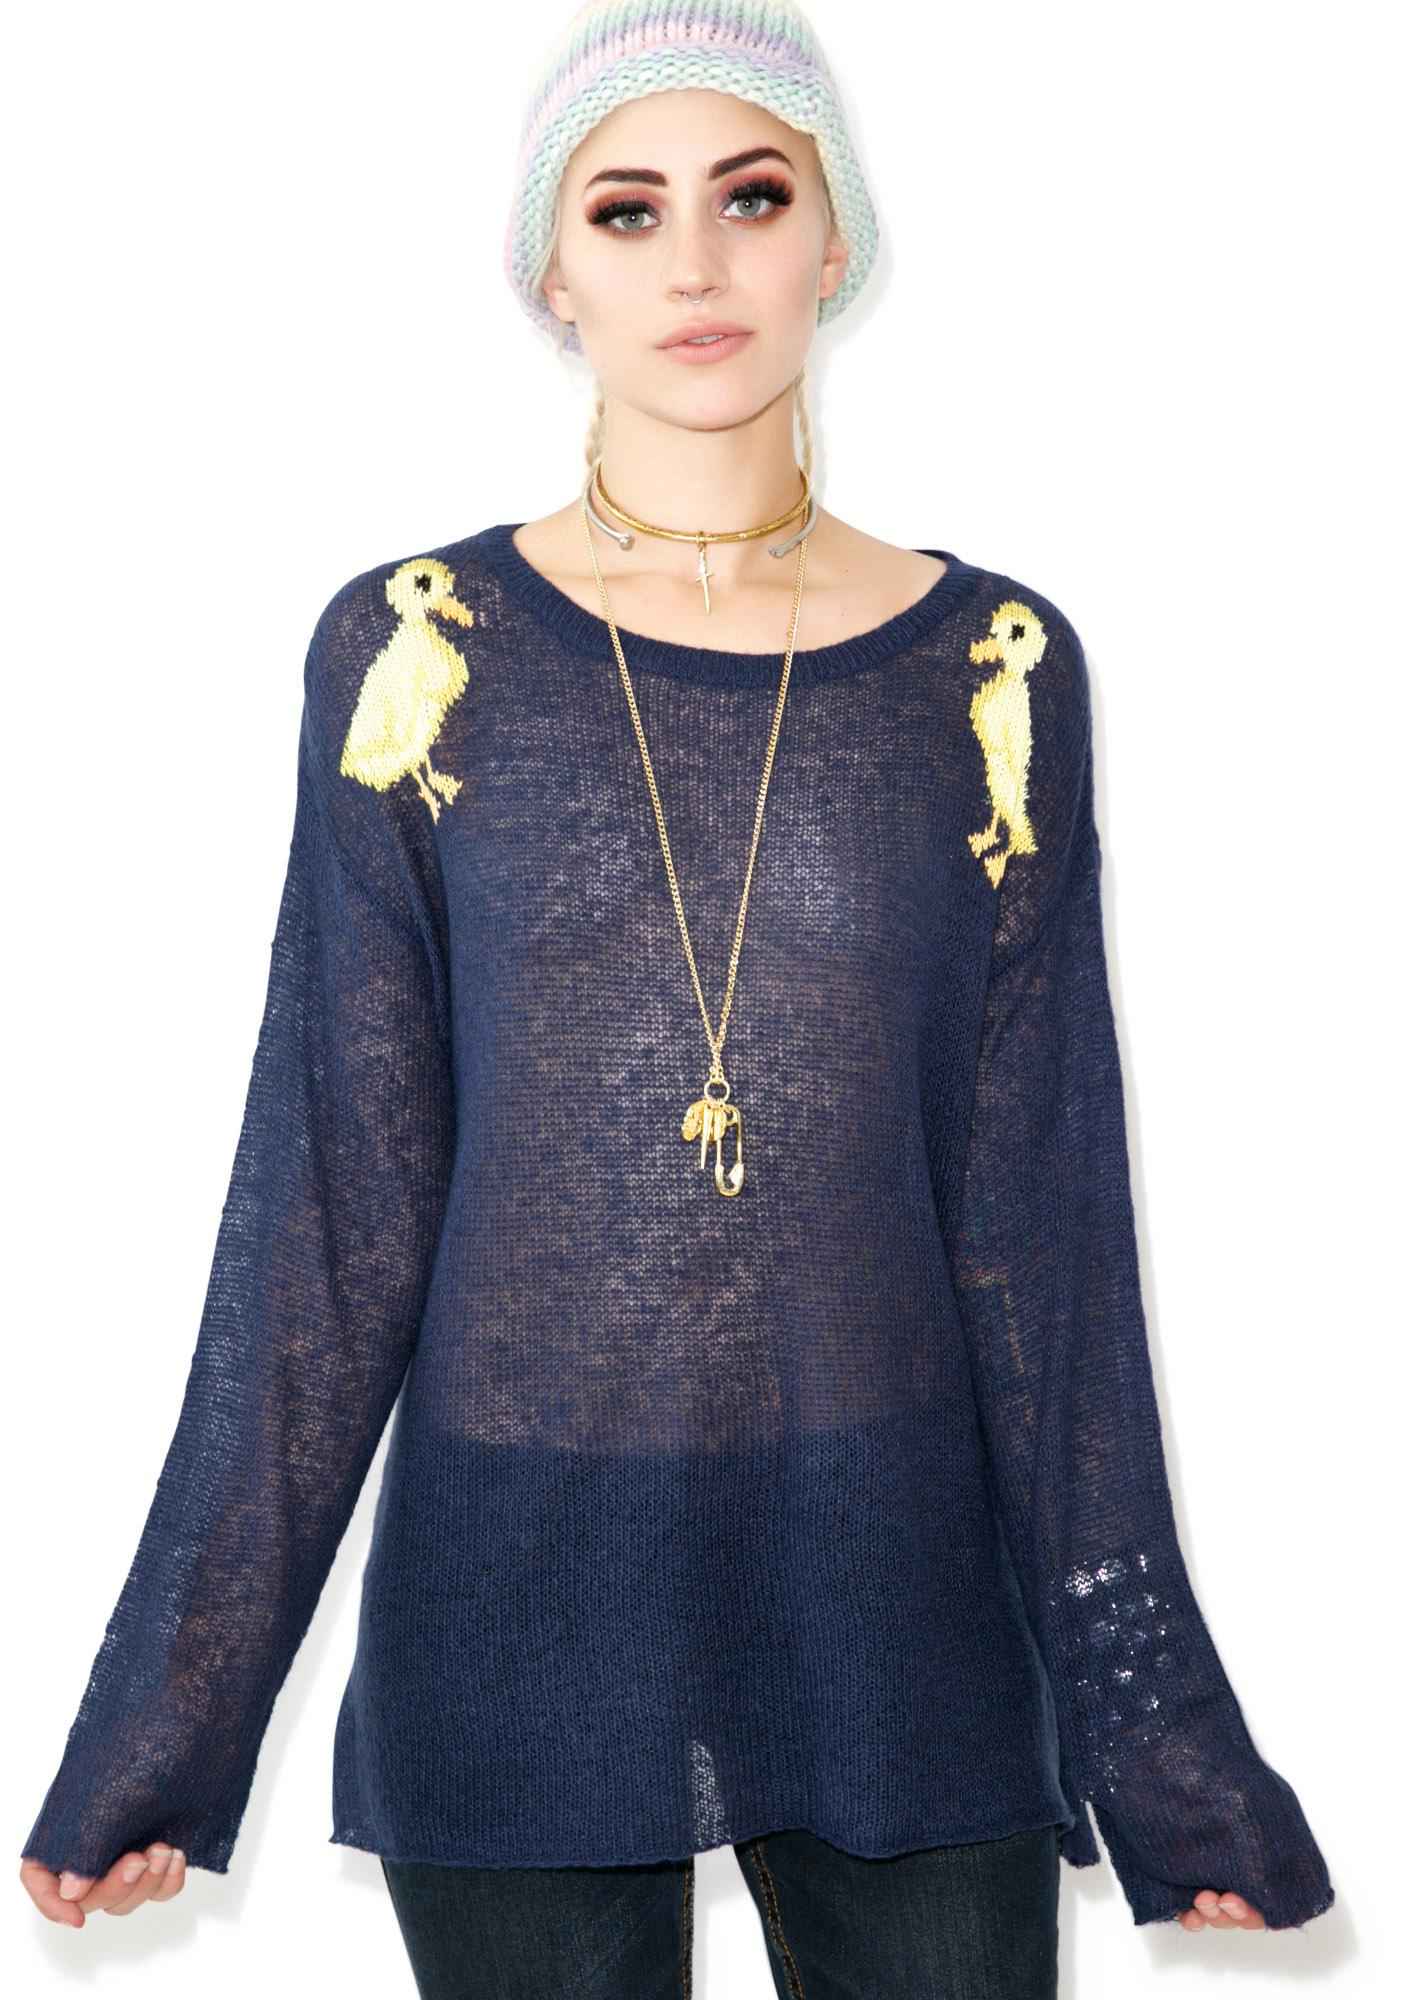 Wildfox Couture Ducklings Roadie Sweater